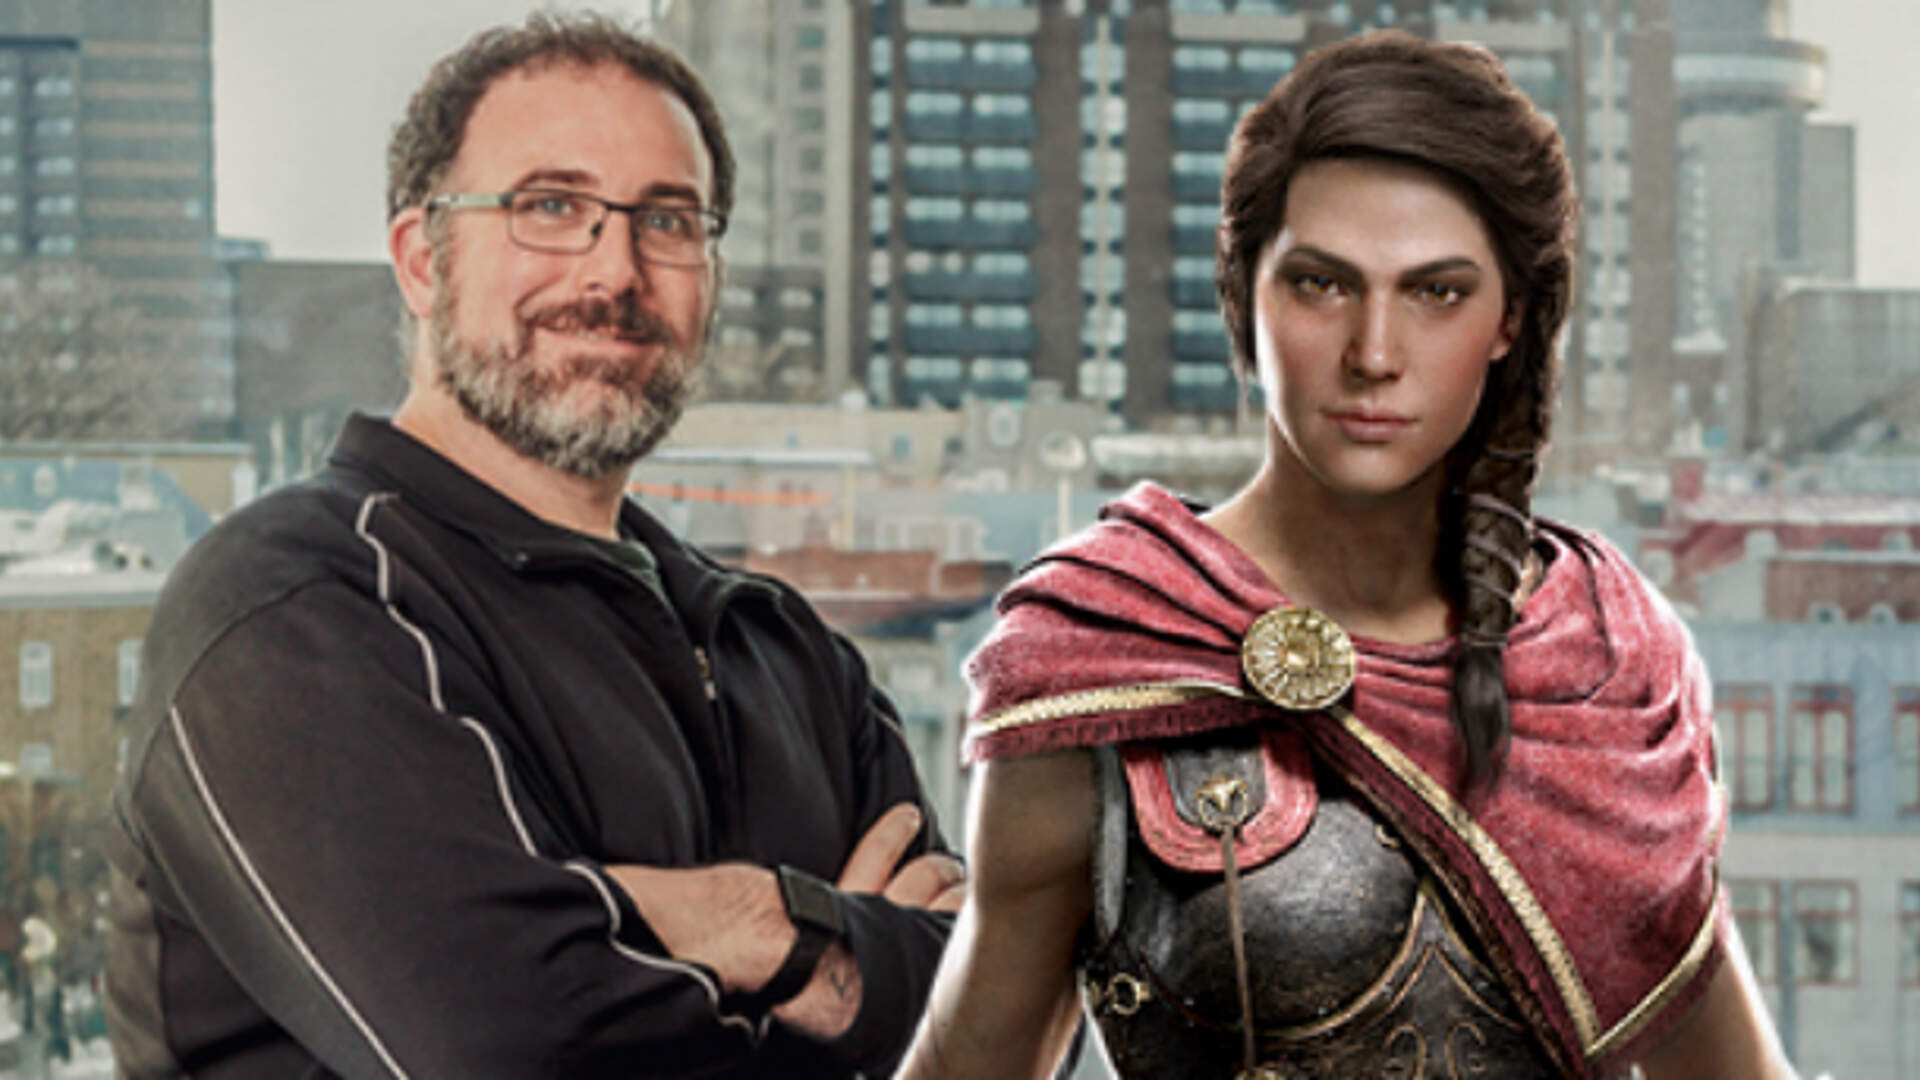 Assassin's Creed Odyssey Studio Picks Up Dragon Age's Mike Laidlaw